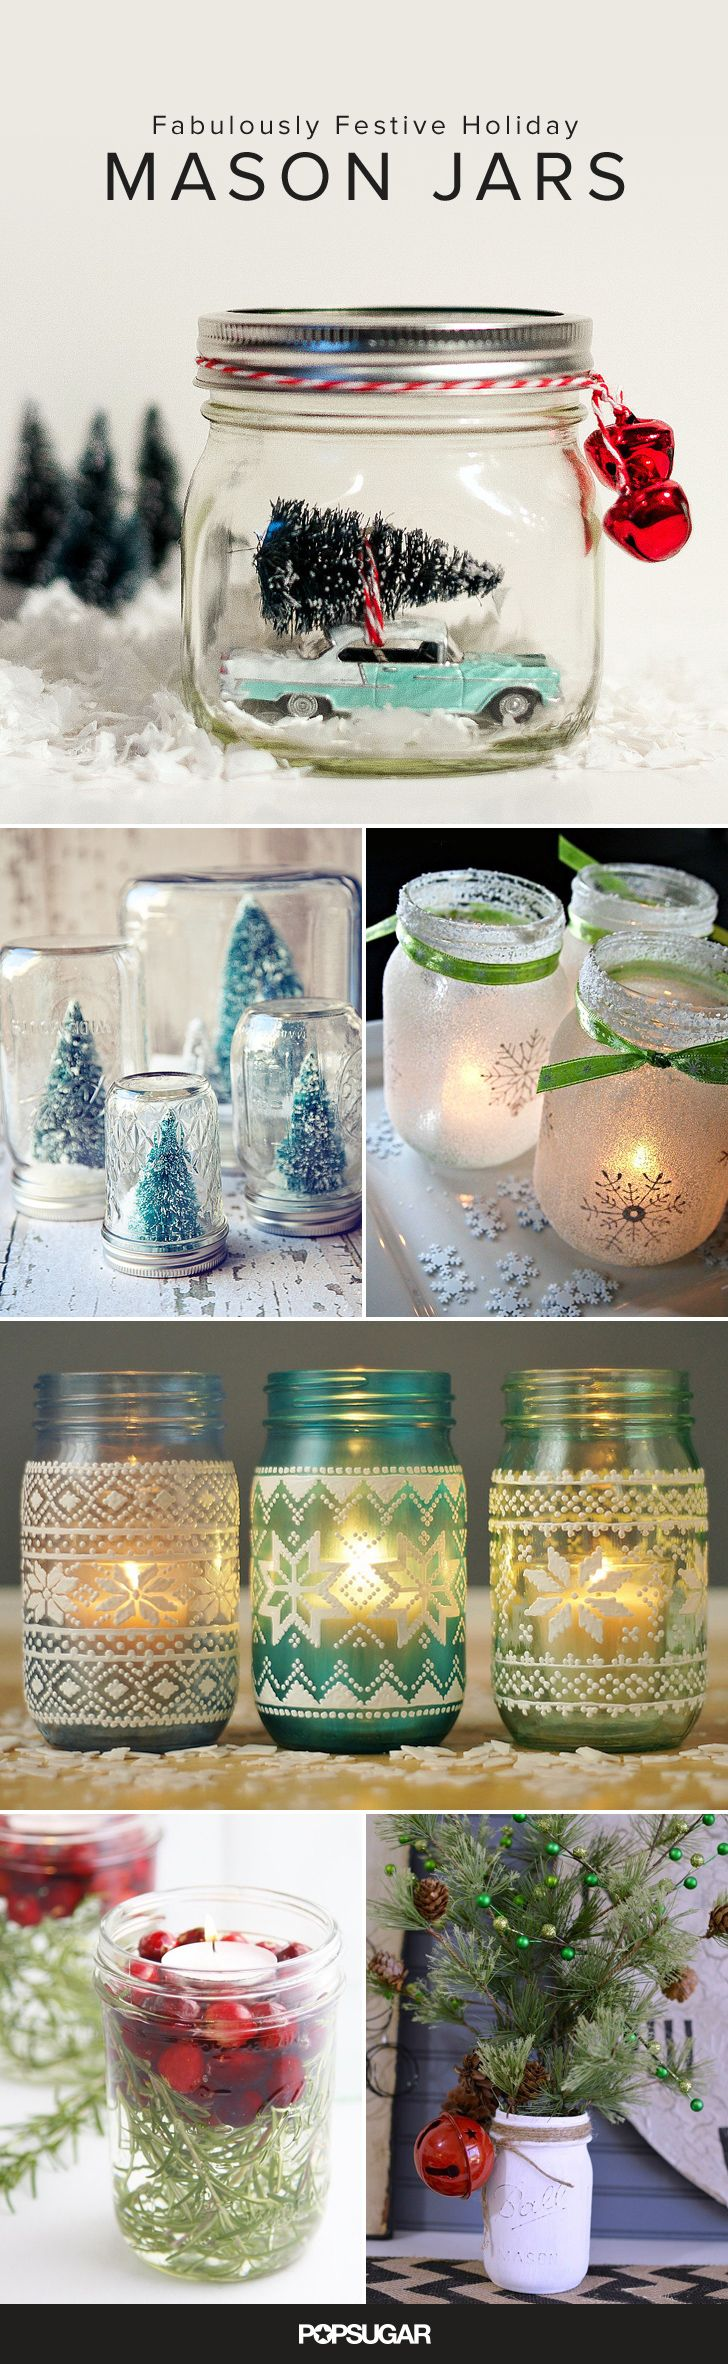 DIY Christmas Mason Jar Lighting Craft Ideas [Instructions] | Jar ...